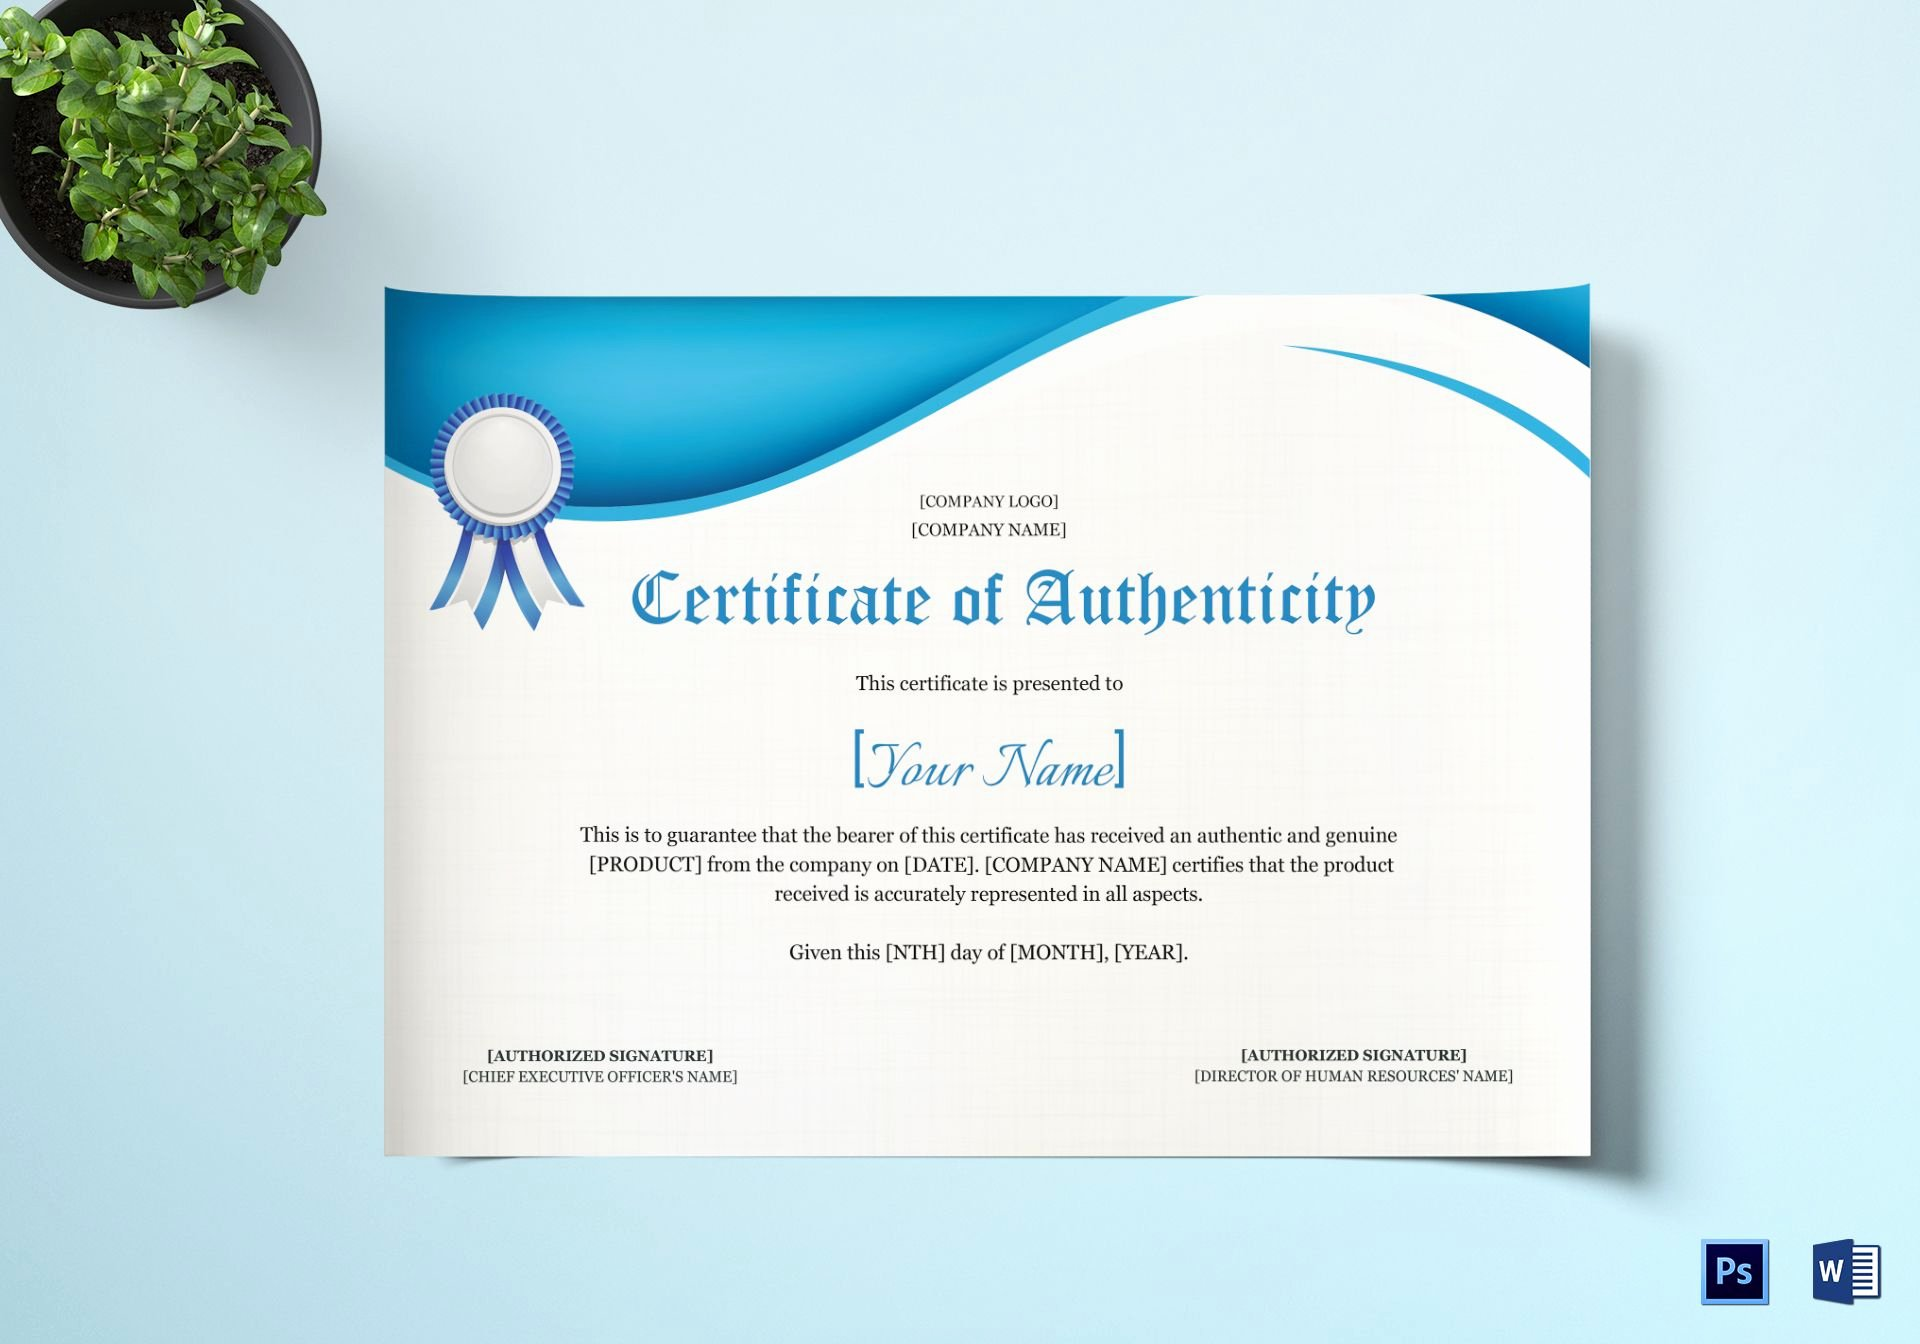 Certificate Of Authenticity Wording Beautiful Product Authenticity Certificate Design Template In Psd Word